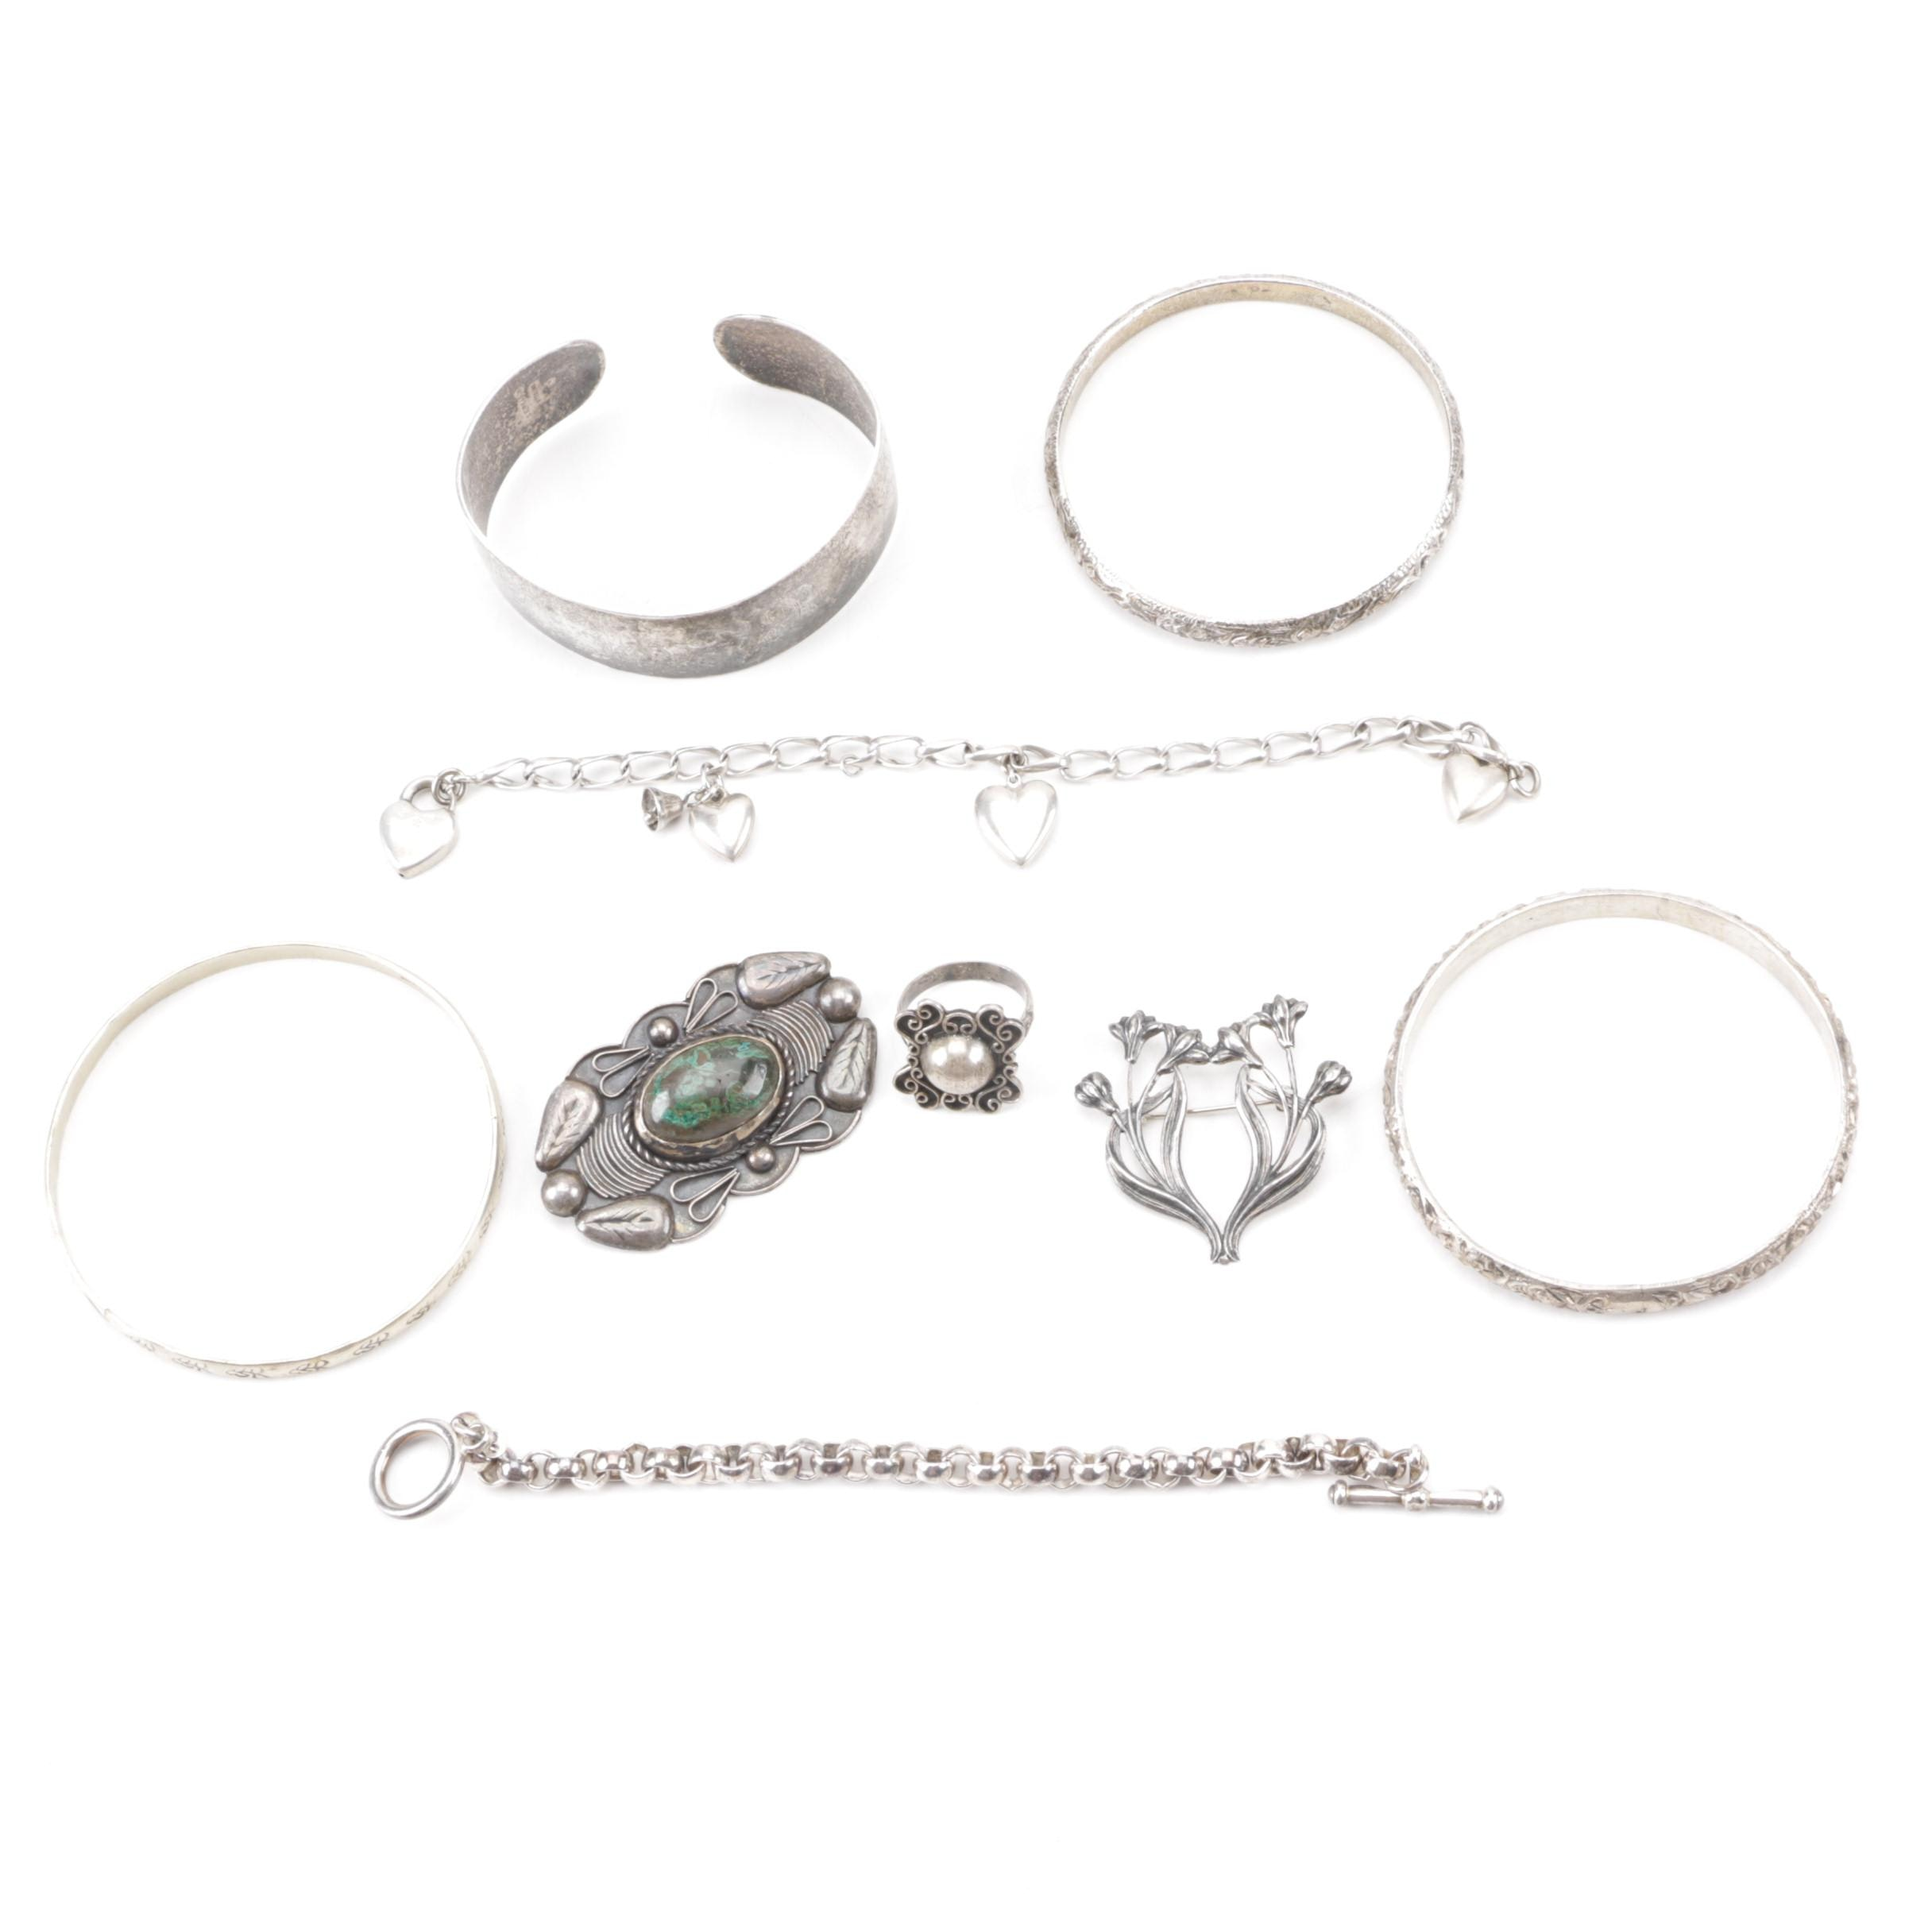 Sterling and Coin Silver Jewelry Including Mexican Brooch and Kirk & Son Cuff